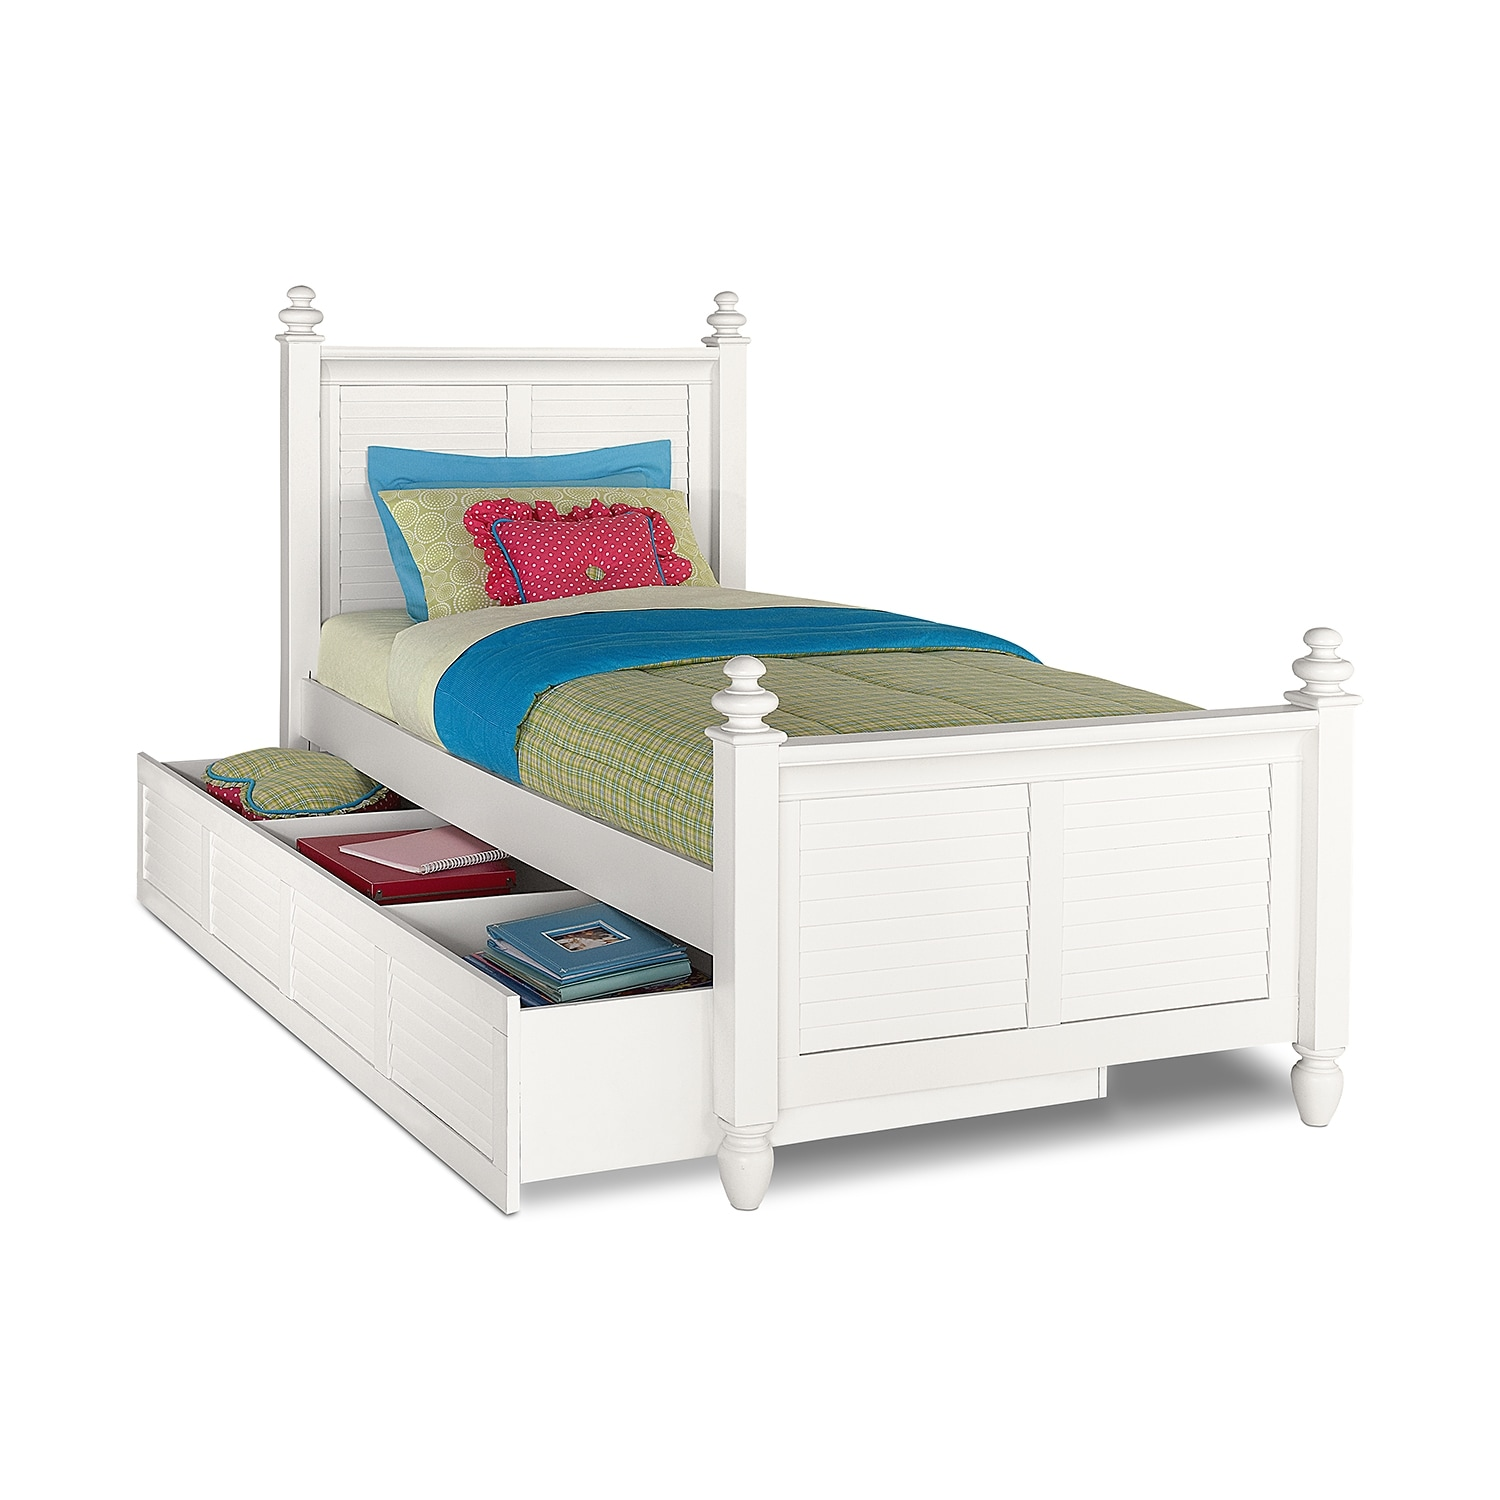 Seaside twin bed with trundle white value city furniture for Beds with trundle